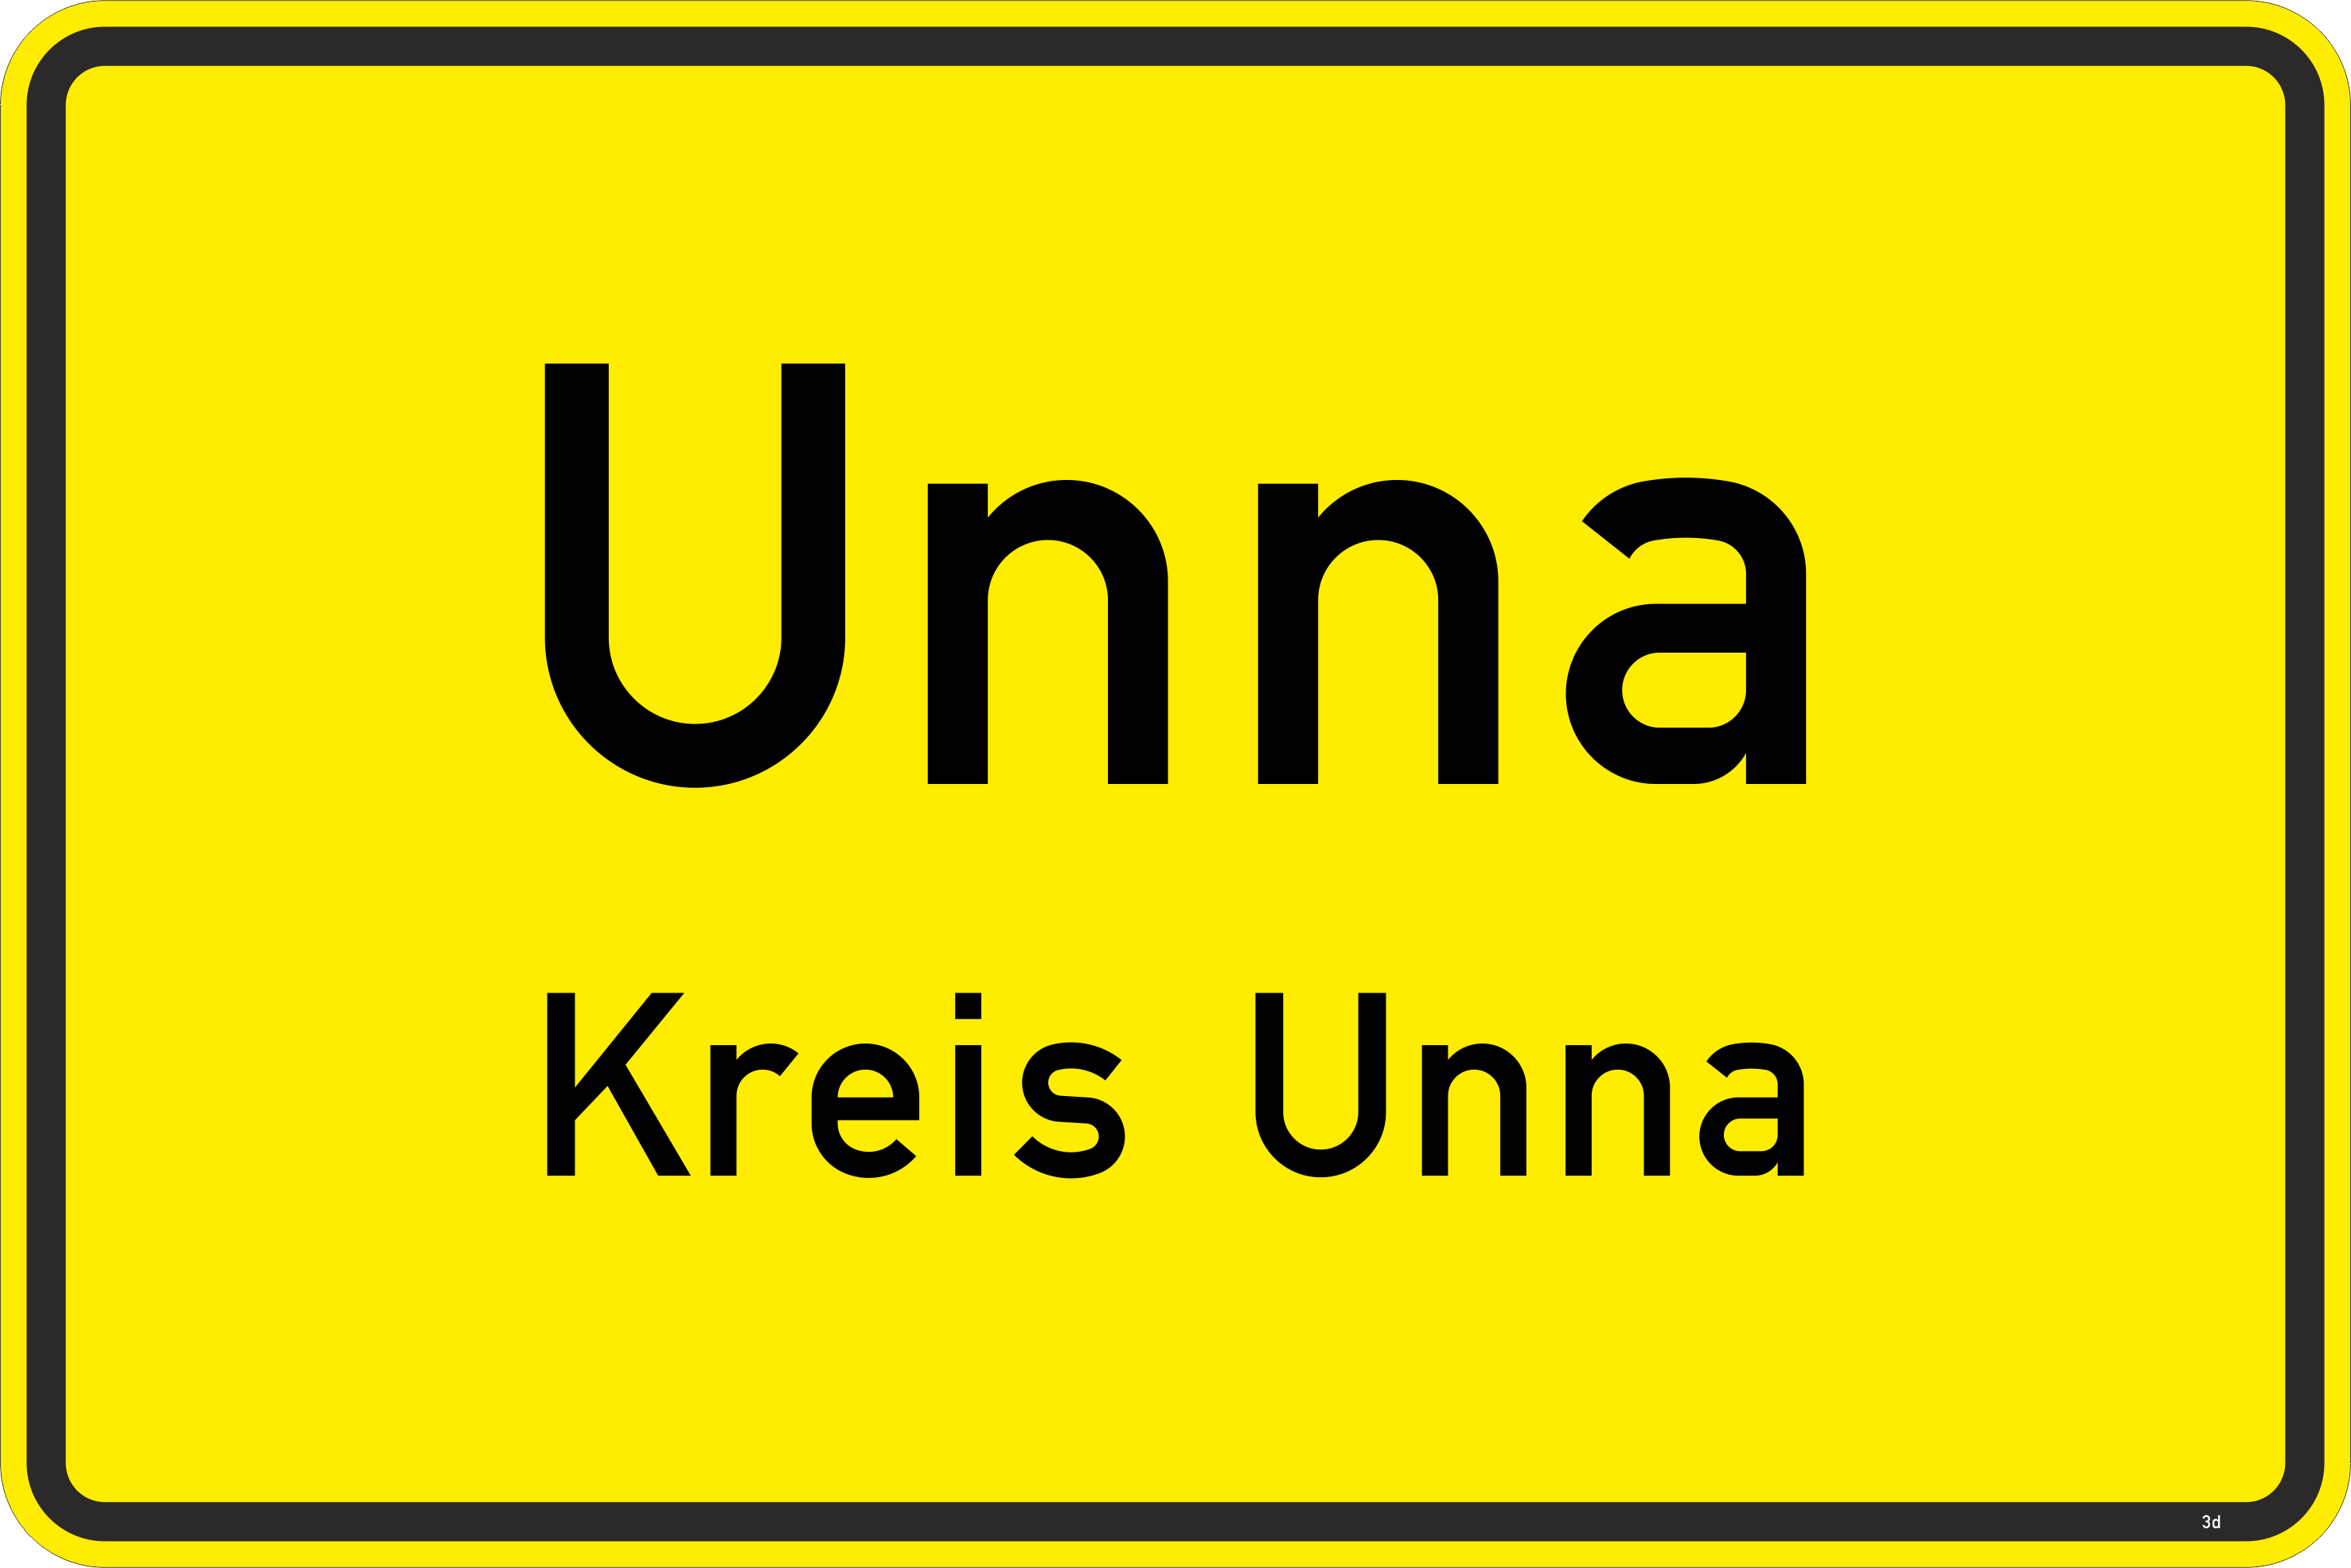 unna.png